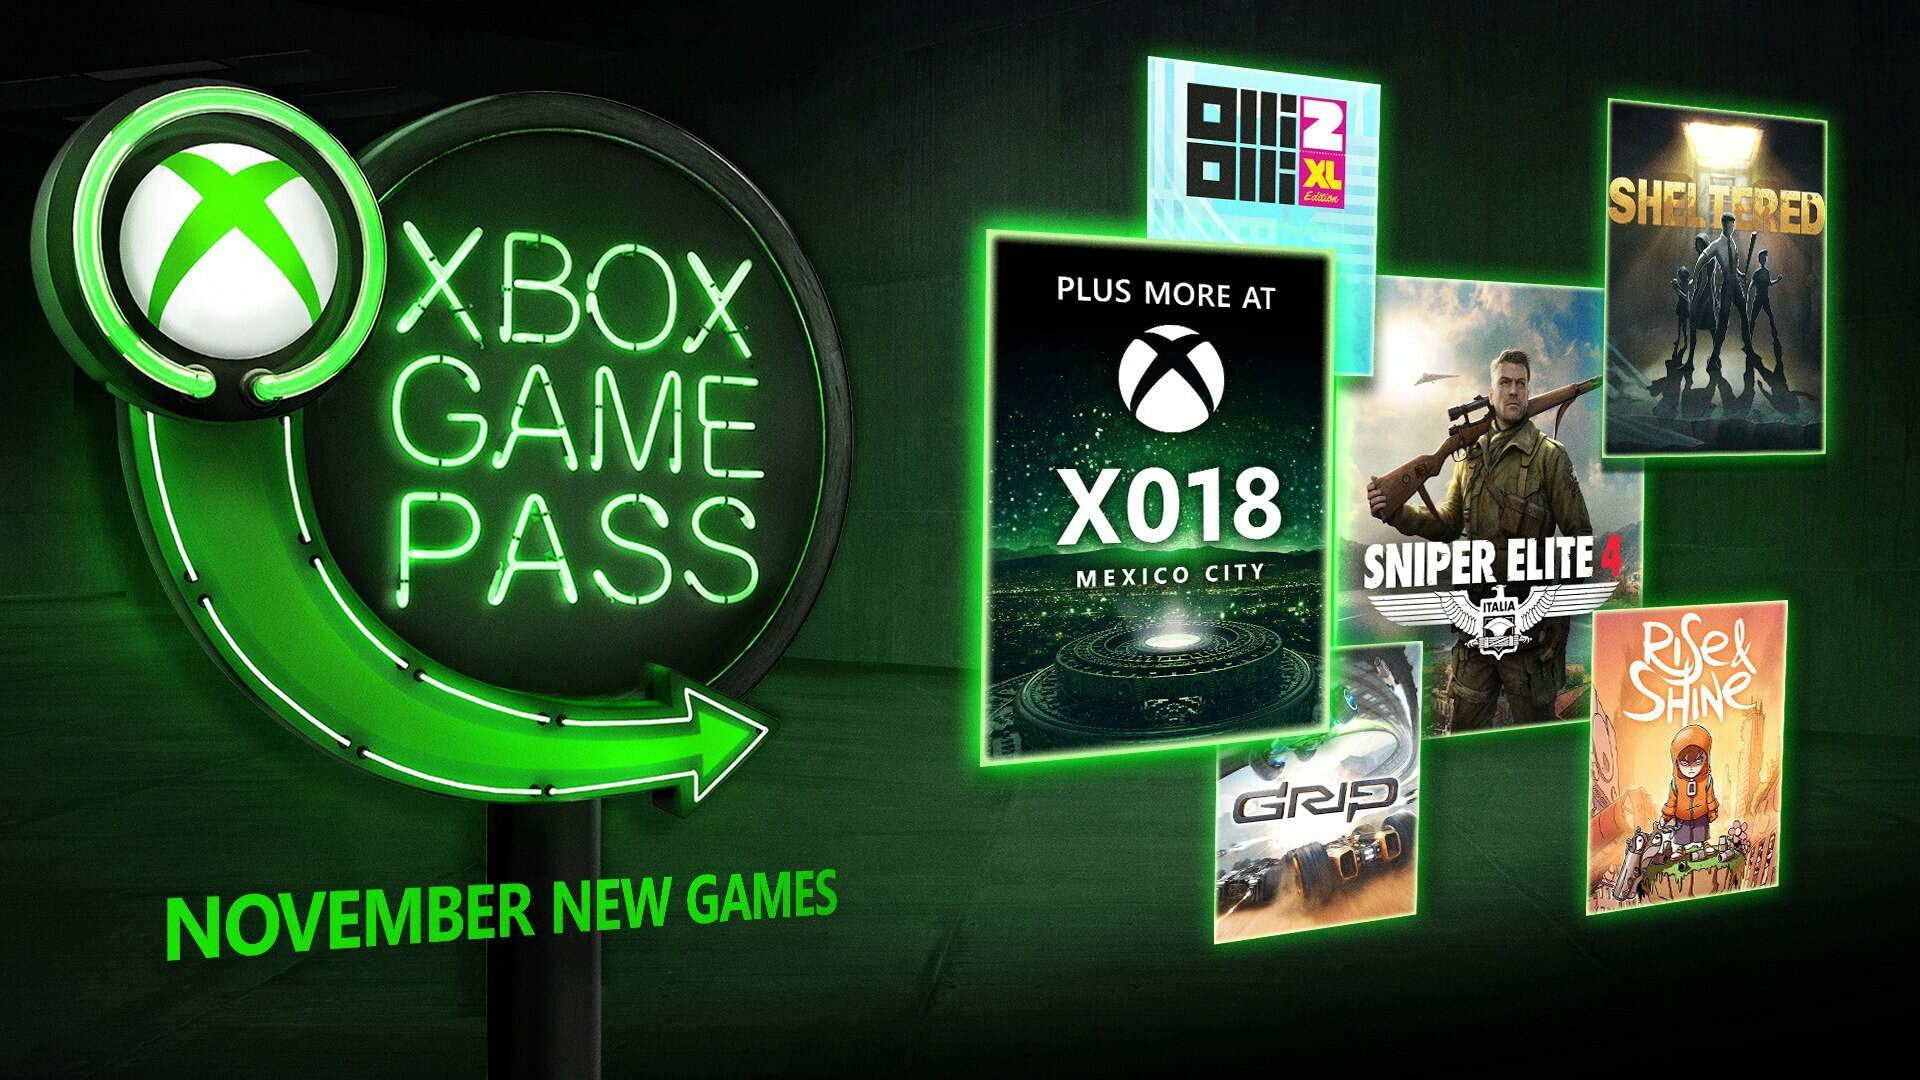 Xbox Game Pass Ultimate is a New Monthly Subscription That Includes Xbox Live Gold